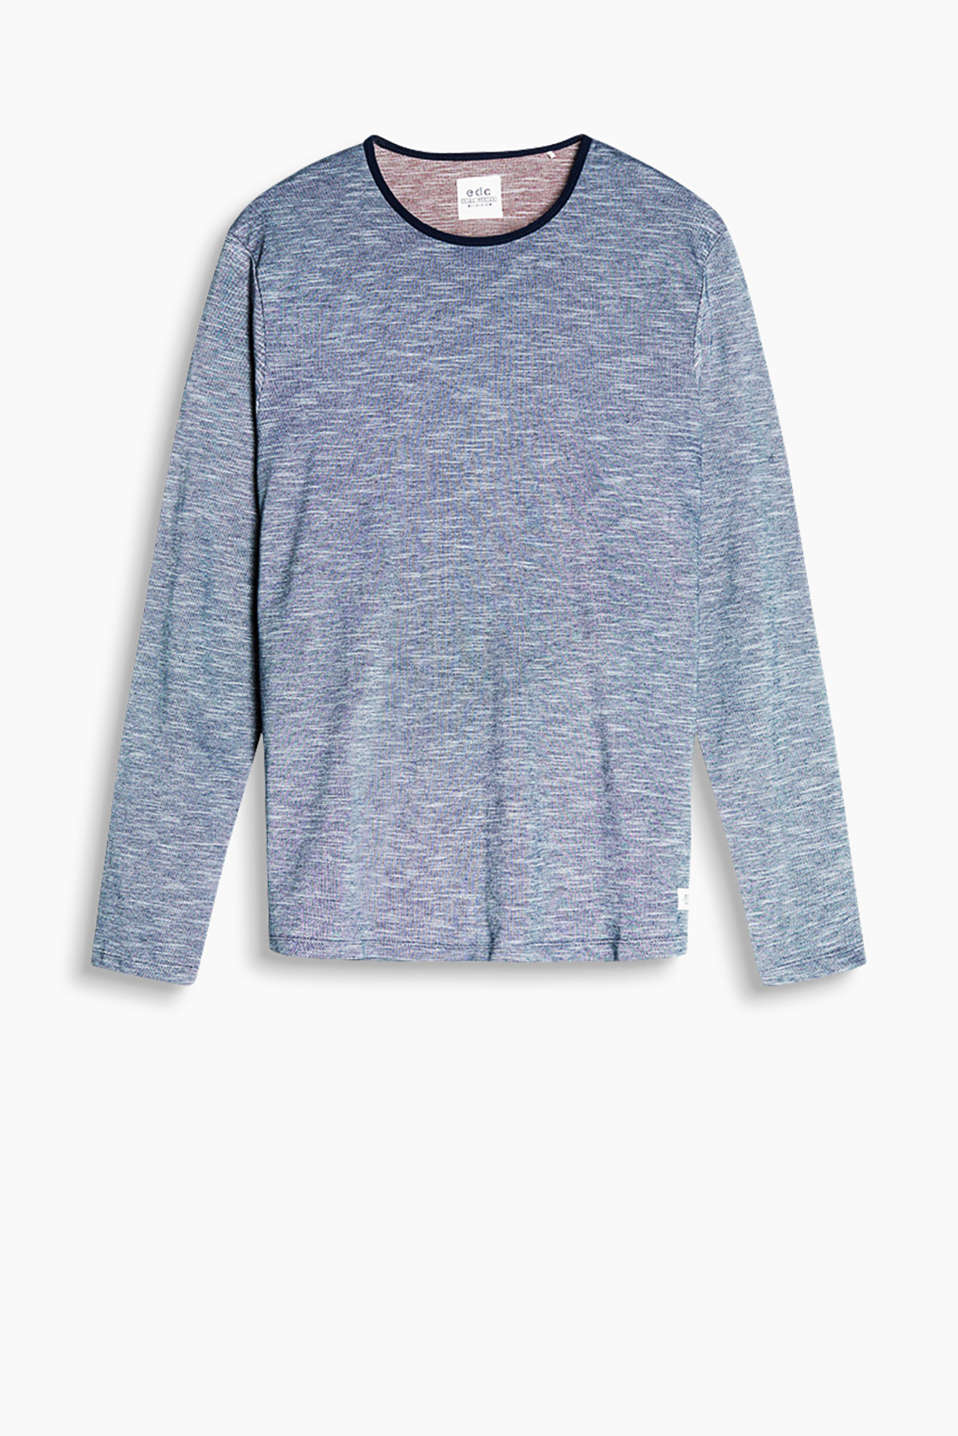 Two-tone long sleeve top in 100% cotton